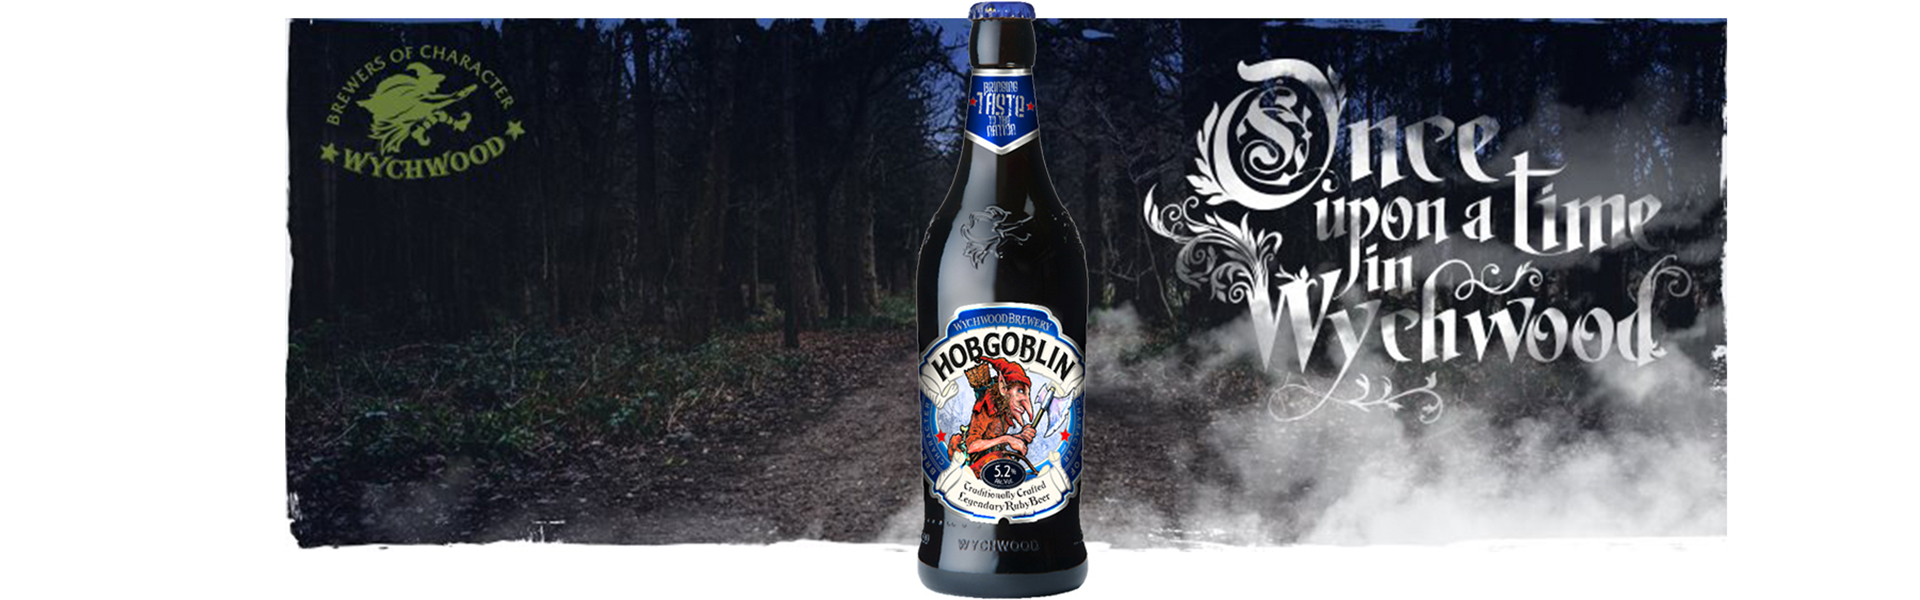 Once upon a time in Wychwood… Hobgoblin hemsöker Systembolaget 2 september.